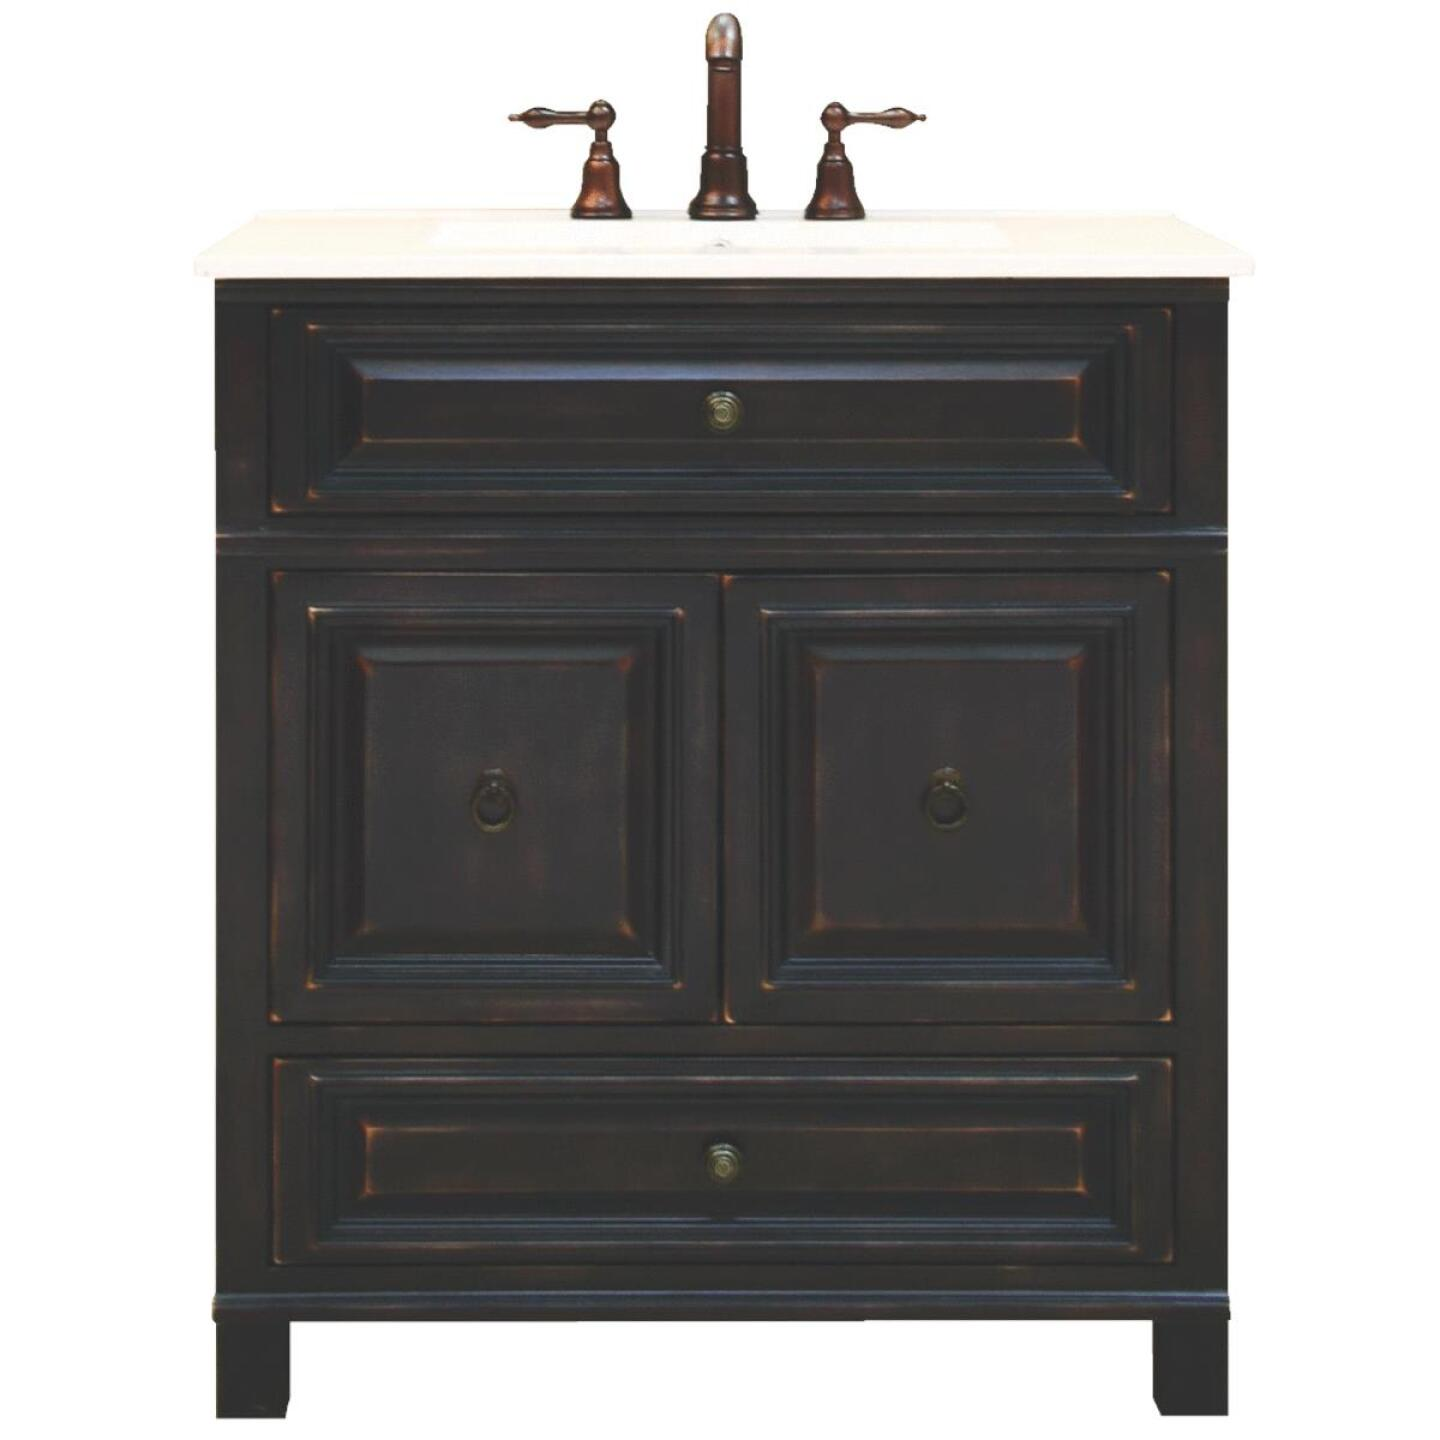 Sunny Wood Barton Hill Black Onyx 30 In. W x 34 In. H x 21 In. D Vanity Base, 2 Door/1 Drawer Image 157